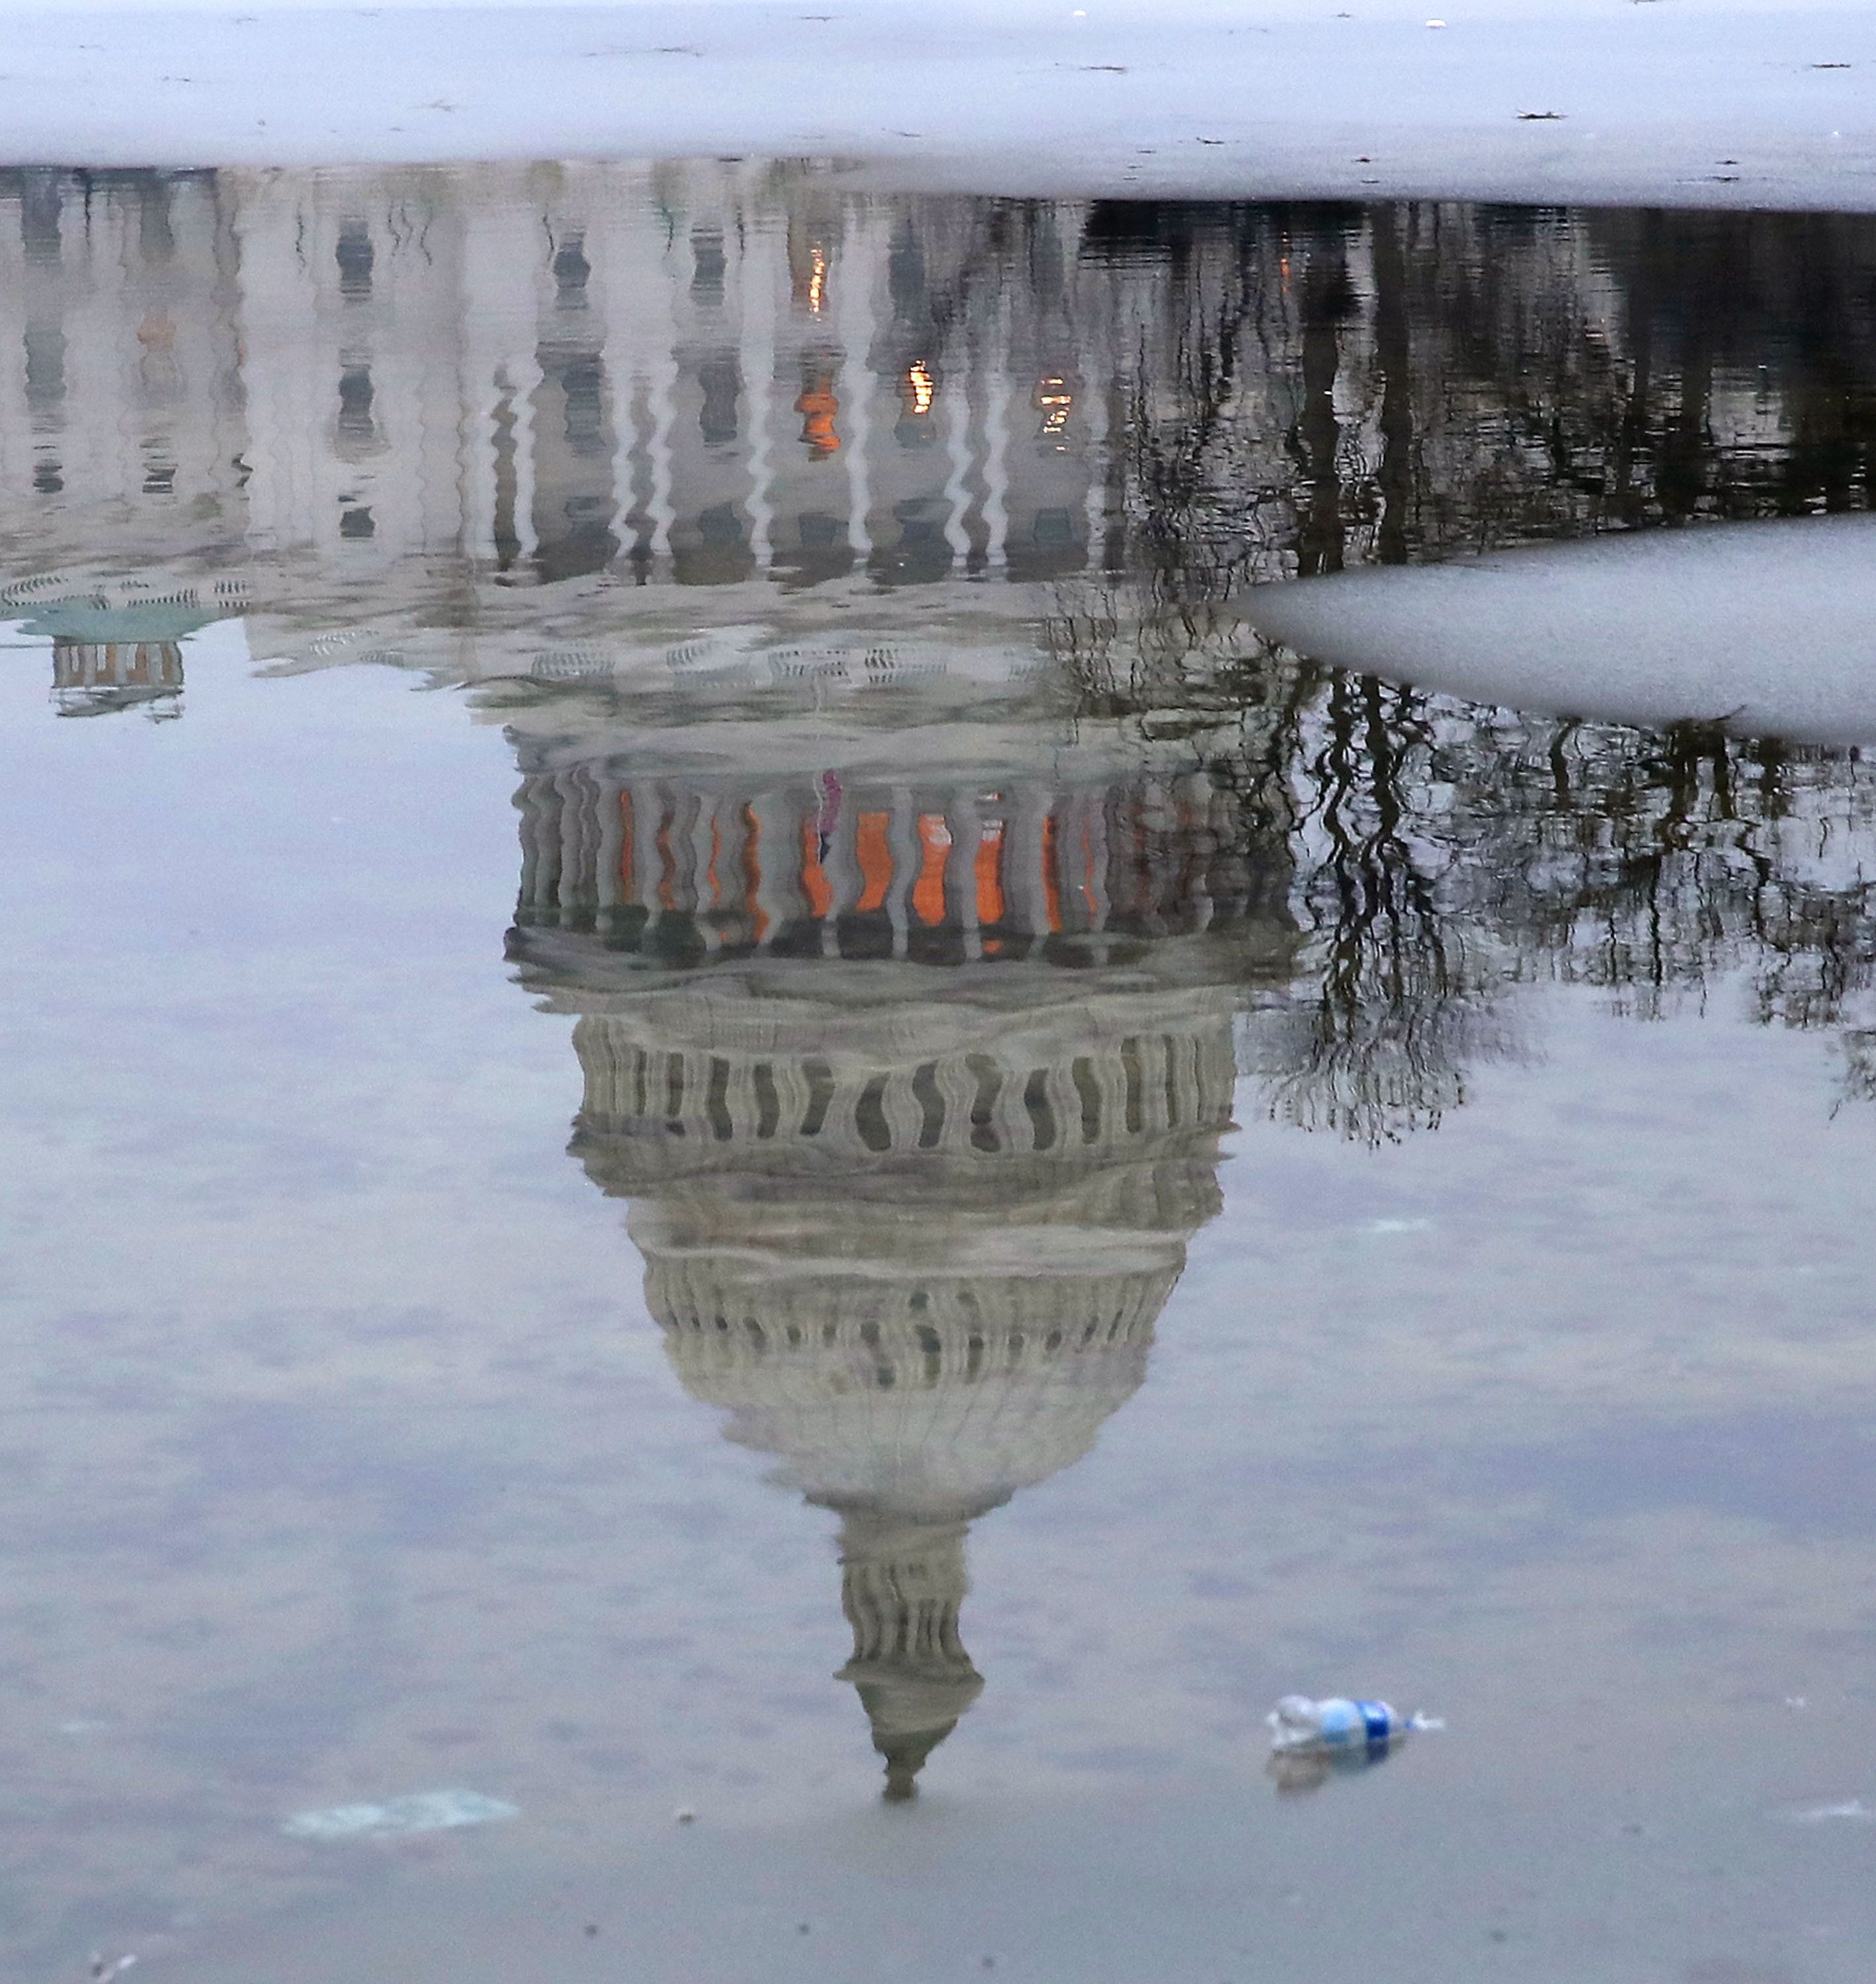 WASHINGTON, DC - JANUARY 18:  The U.S. Capitol is reflected onto a partially frozen reflecting pool on January 18, 2019 in Washington, DC. The U.S. government is in the 28th day of a partial shutdown while the stalemate continues between President Donald Trump and congressional Democrats as they cannot come to a bipartisan solution for more money to build a wall along the U.S.-Mexico border.  (Photo by Mark Wilson/Getty Images)